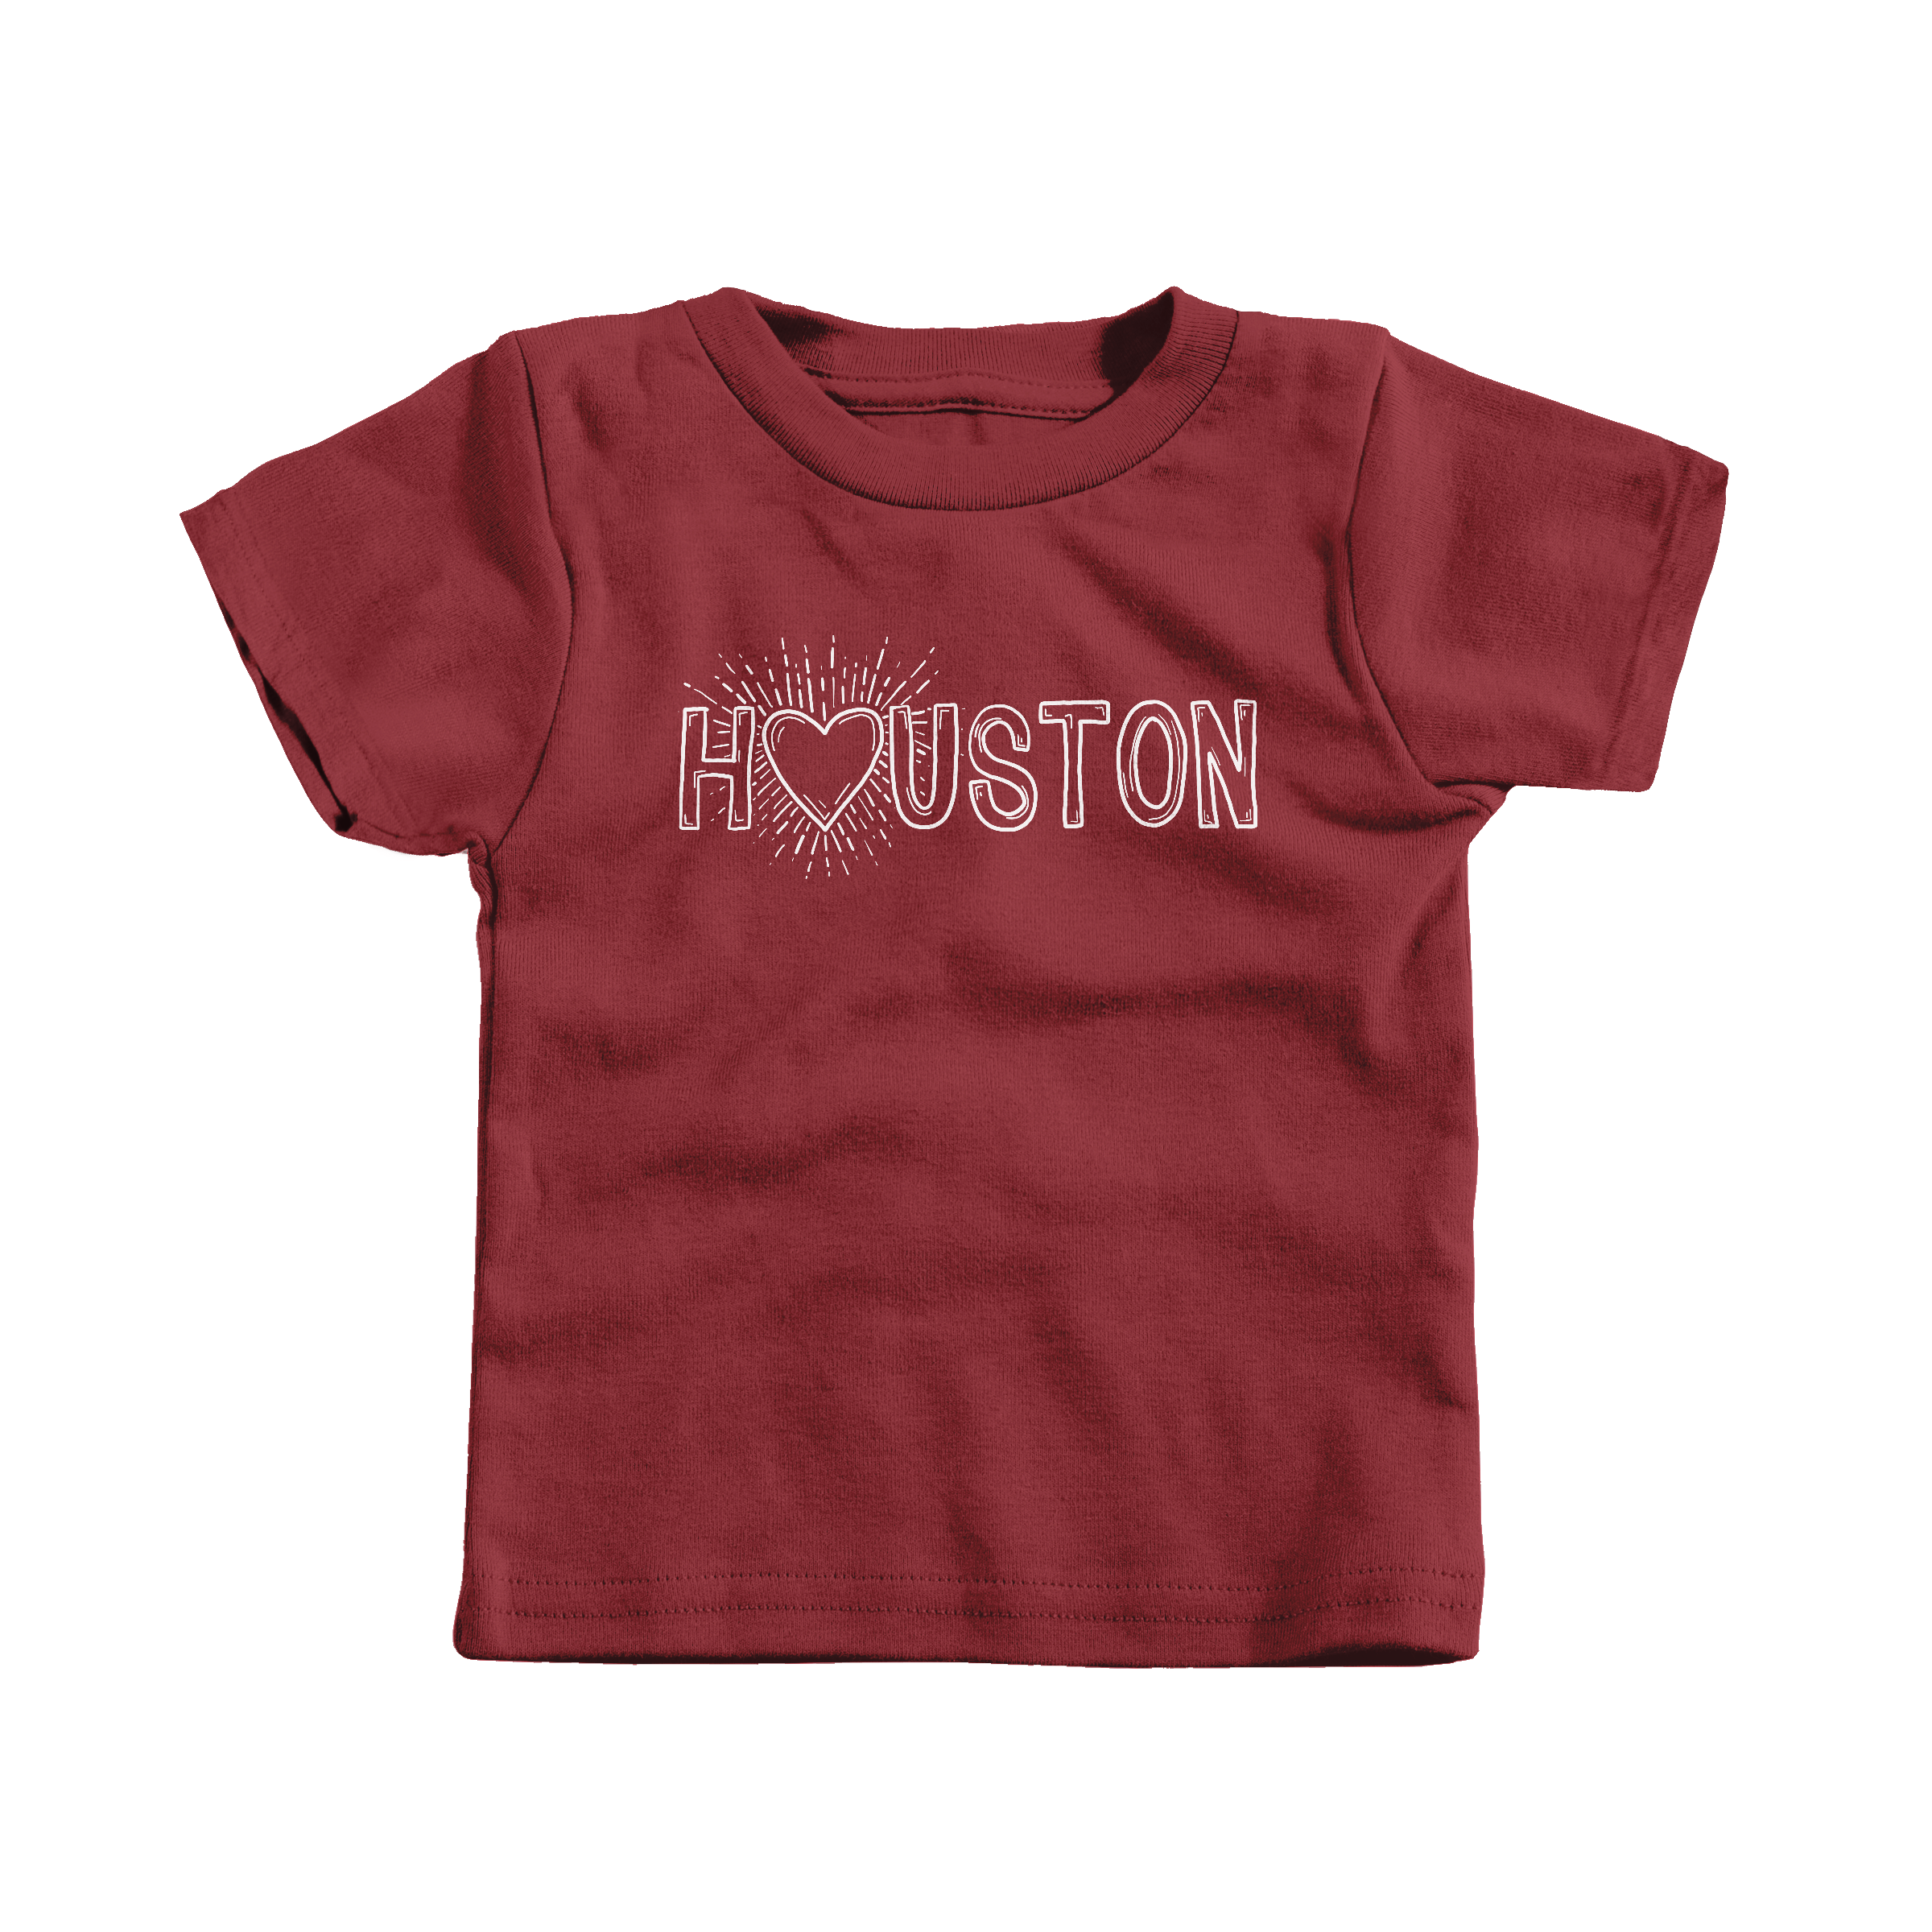 My Heart is With Houston Garnet (T-Shirt)